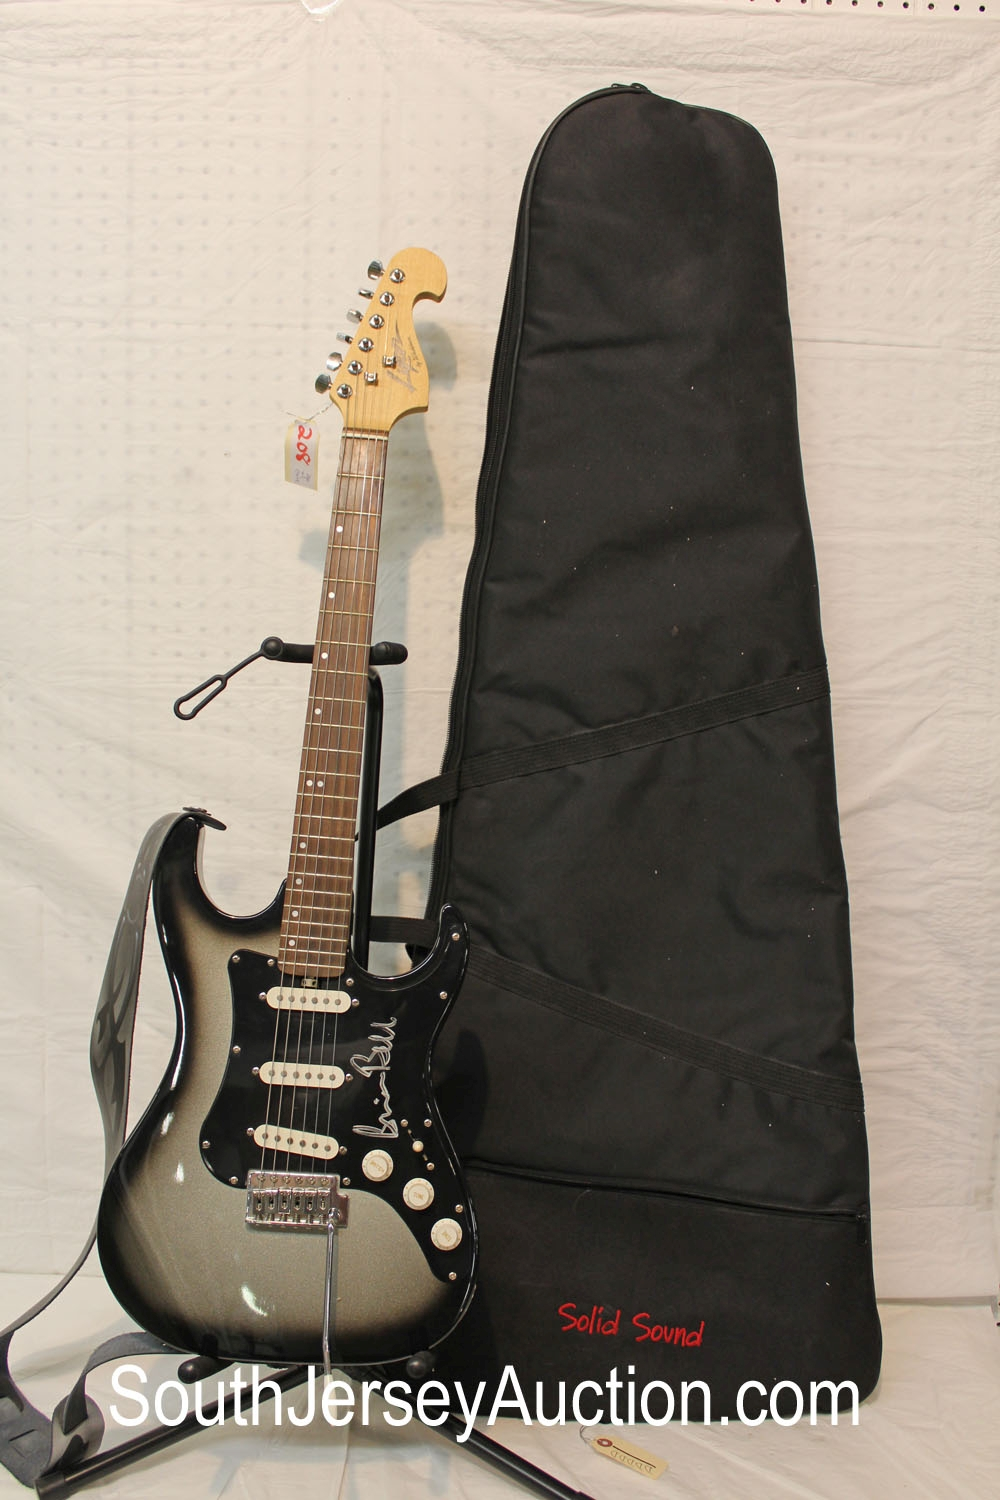 Lyon  by Washburn Stratocaster style, autographed by Brian Bell from Weezer,  black and silver burst fender style,  s/n 5376 of 6000